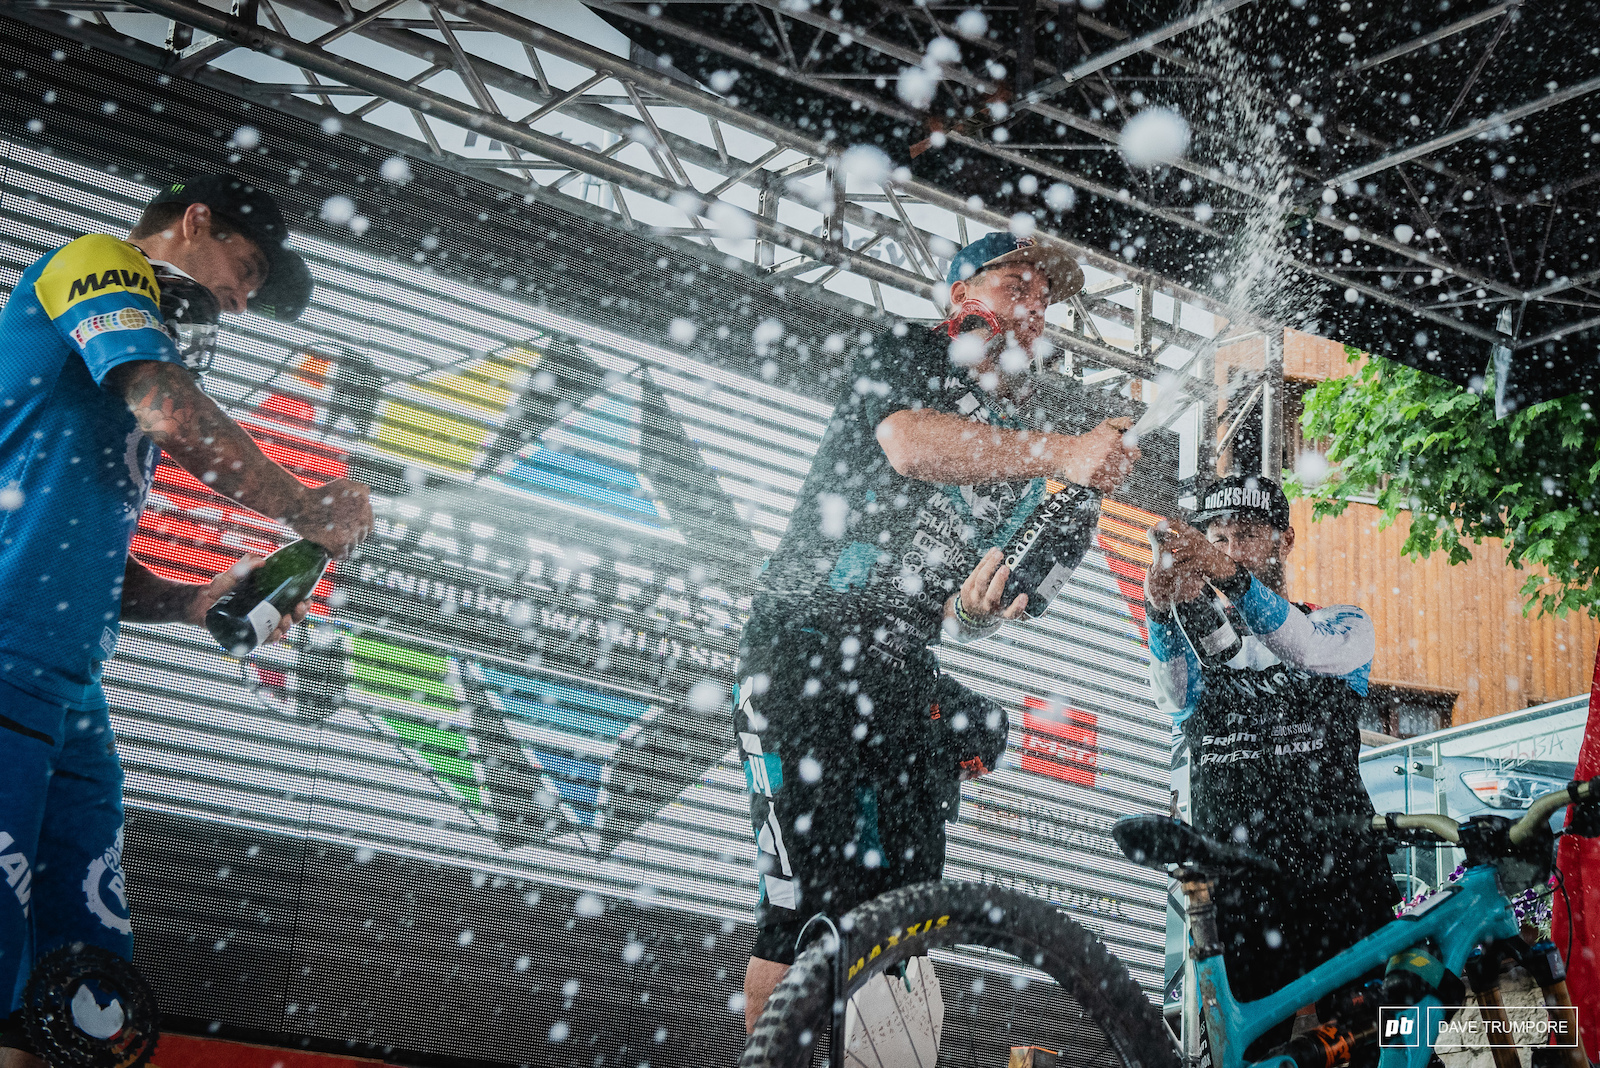 Richie Rude Sam Hill and Florian Nicolai pupping bottles on the podium.